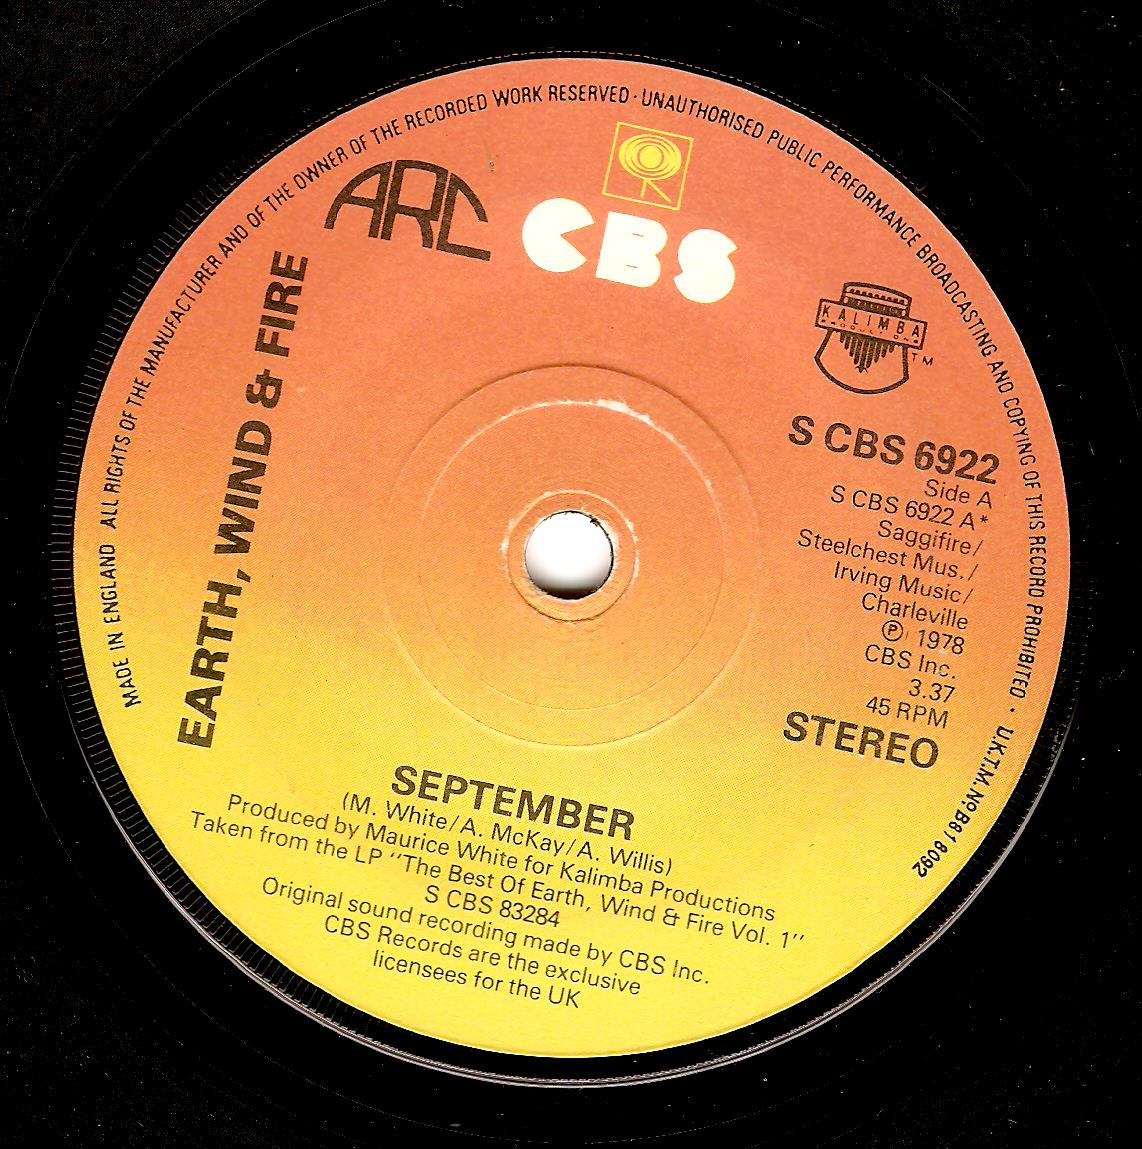 Earth Wind And Fire September Vinyl Record 7 Inch Cbs 1978